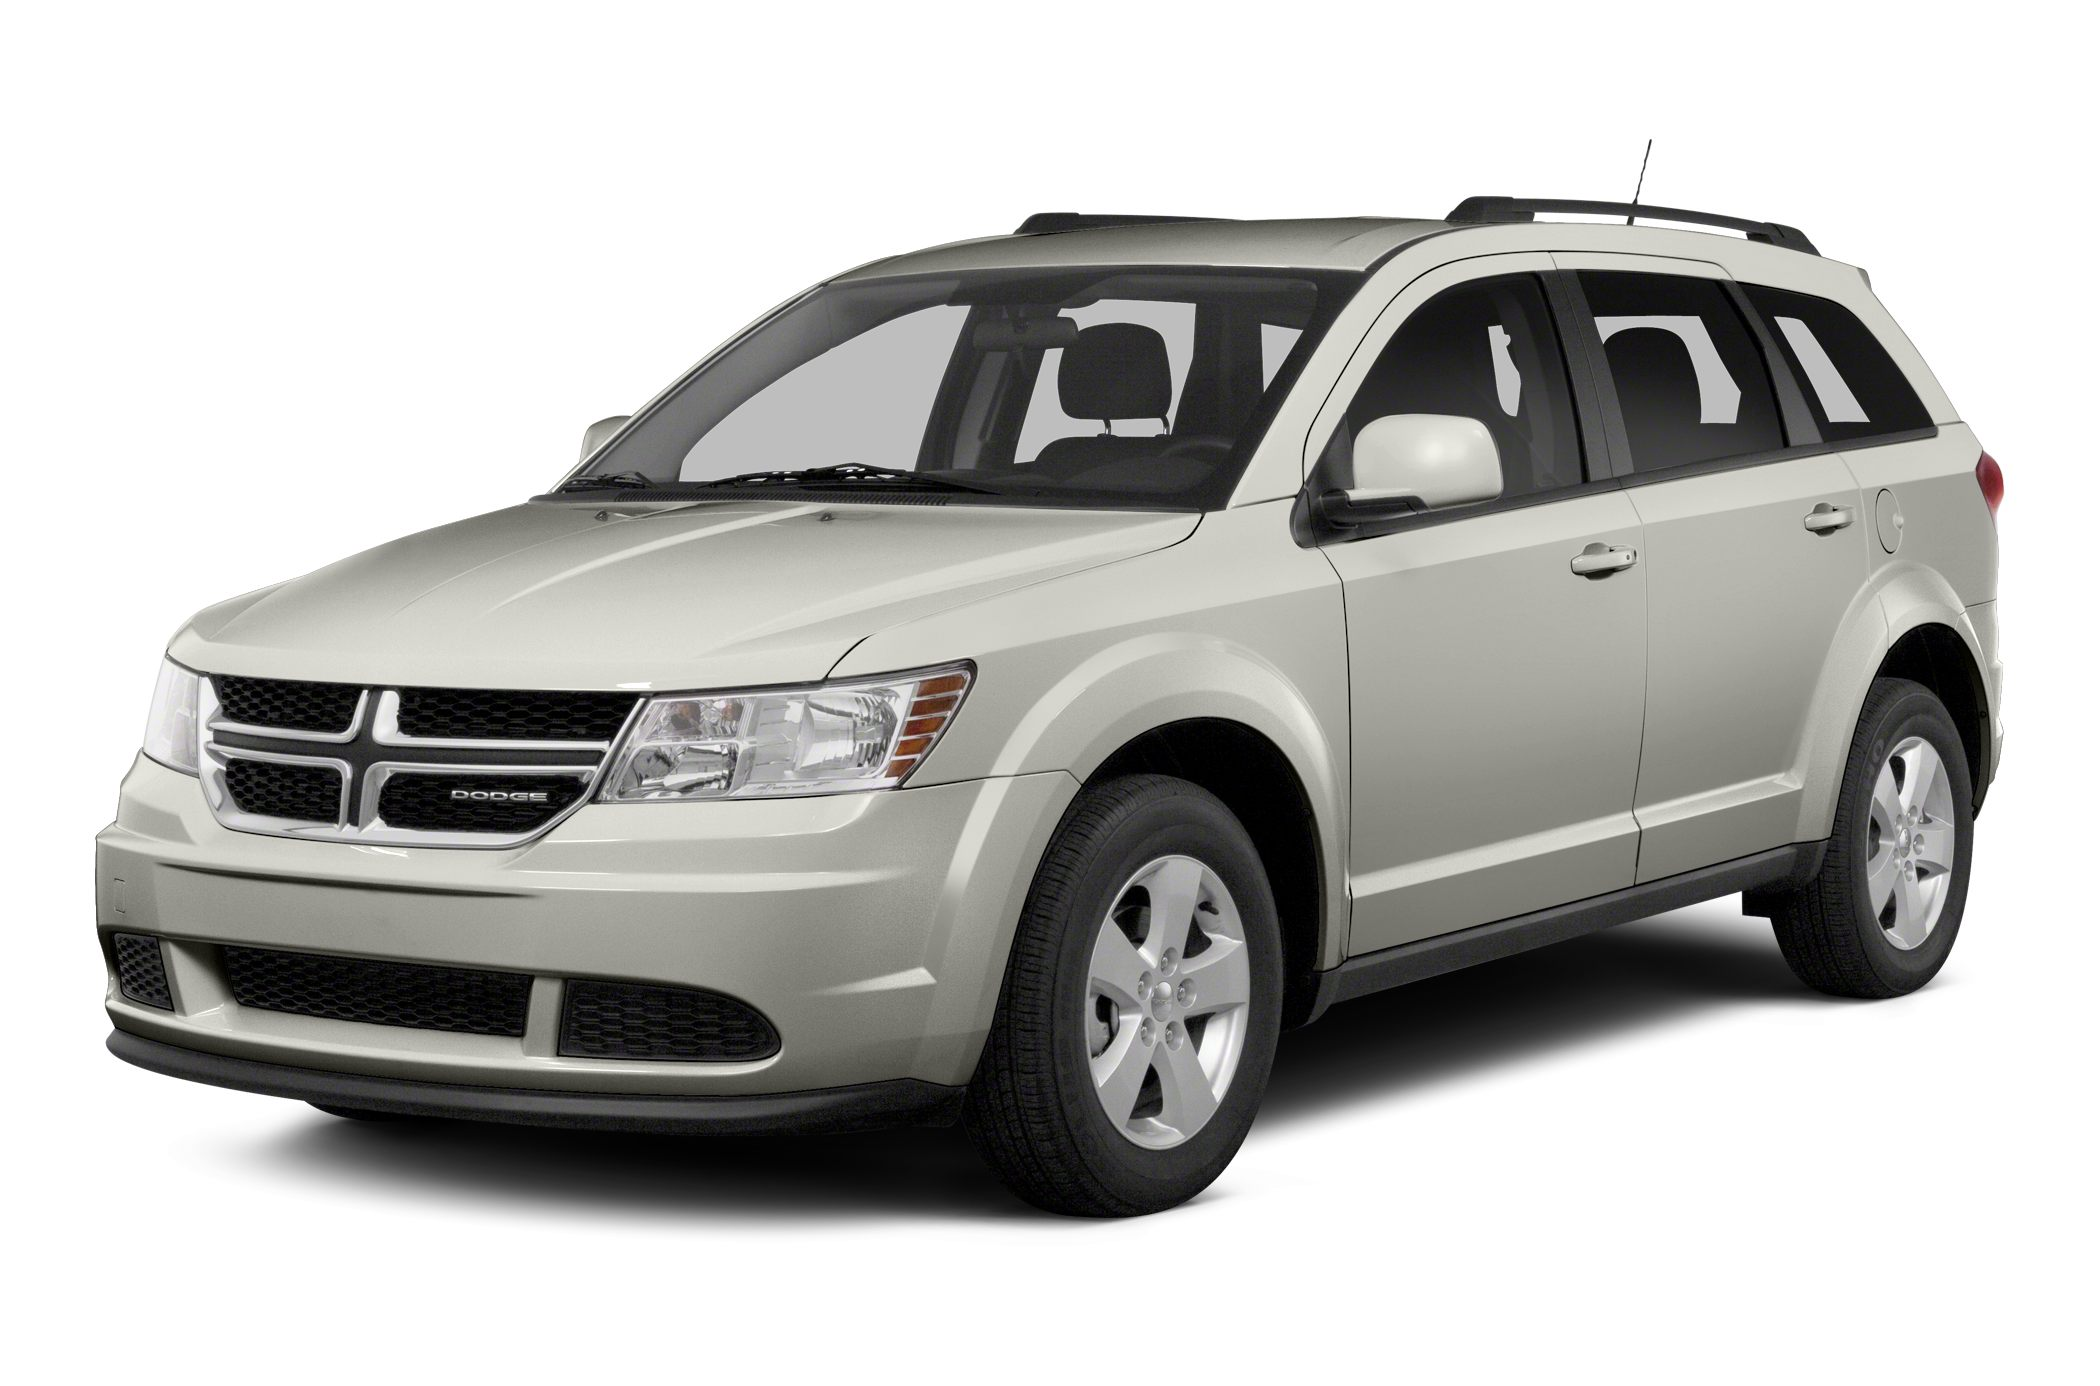 2013 Dodge Journey SXT SUV for sale in Estero for $20,225 with 40,053 miles.